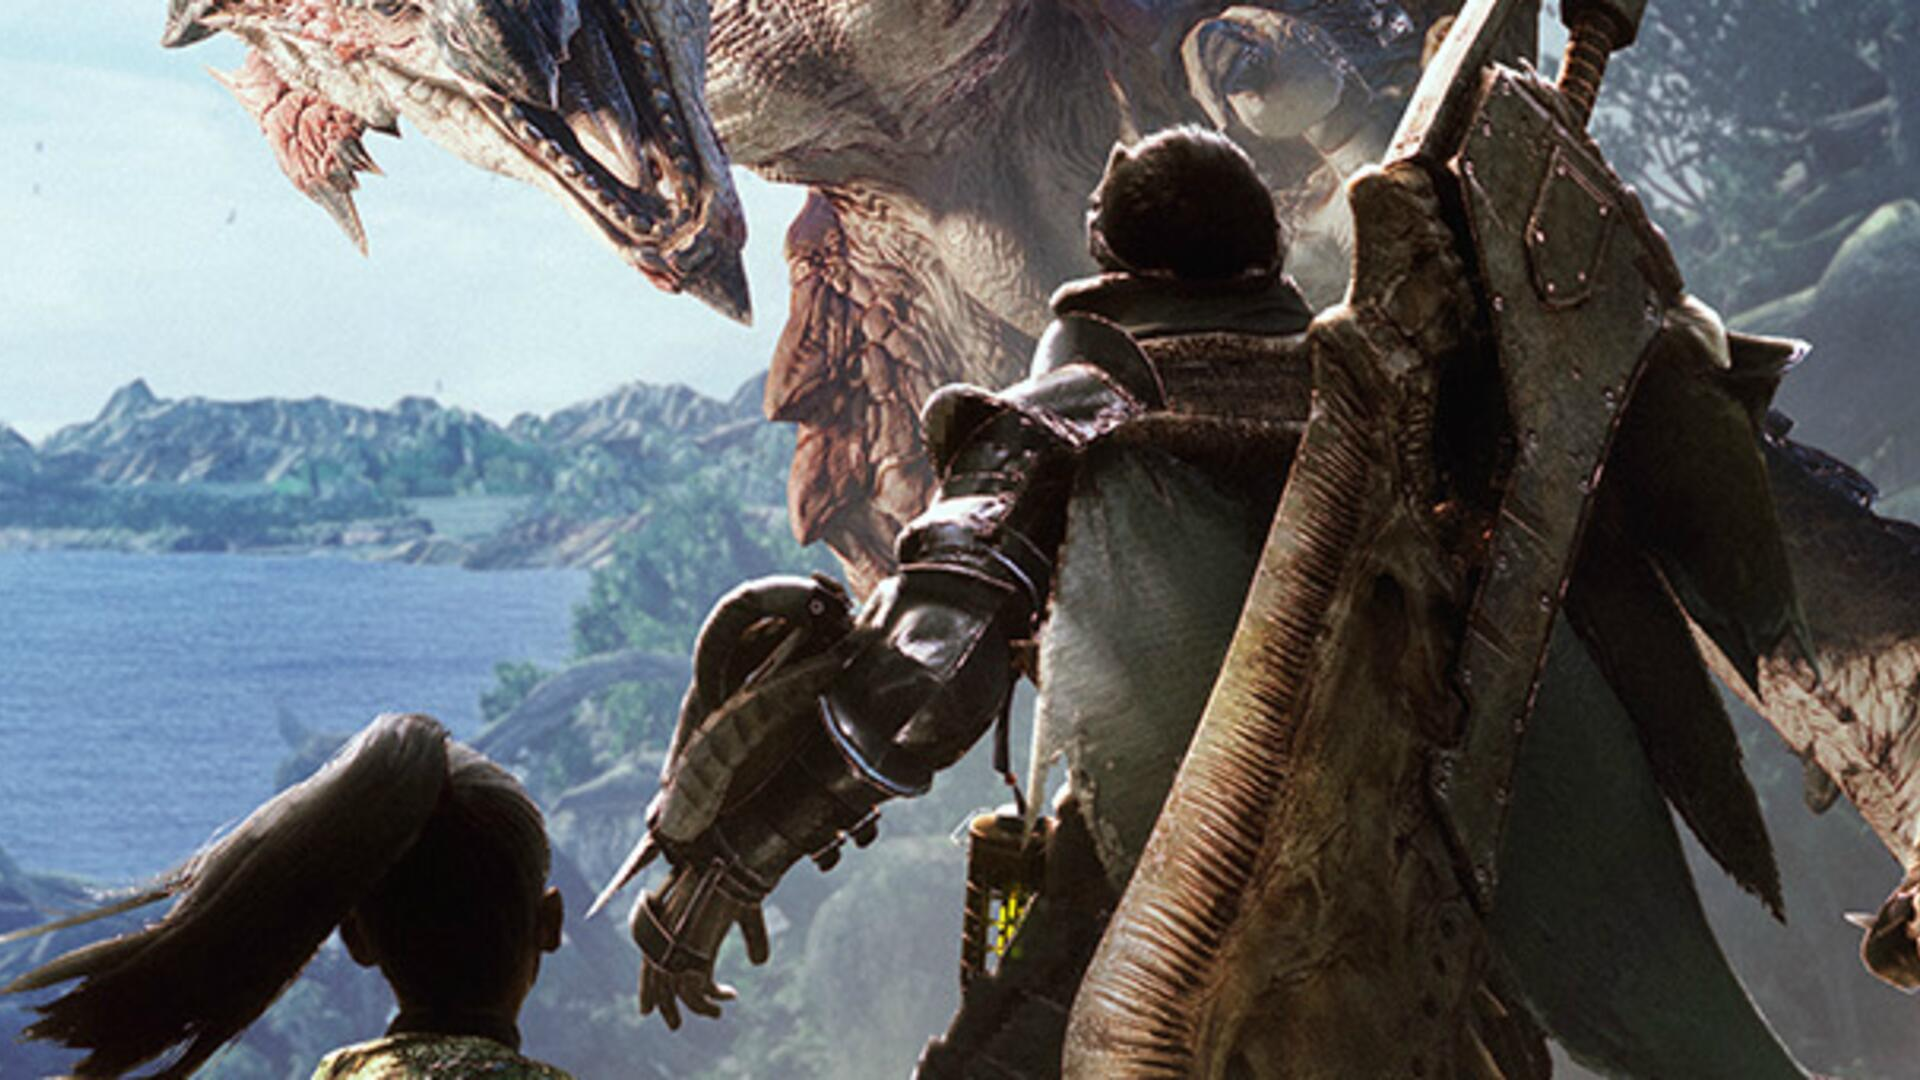 How Monster Hunter Went From Japanese Phenomenon to Global Success